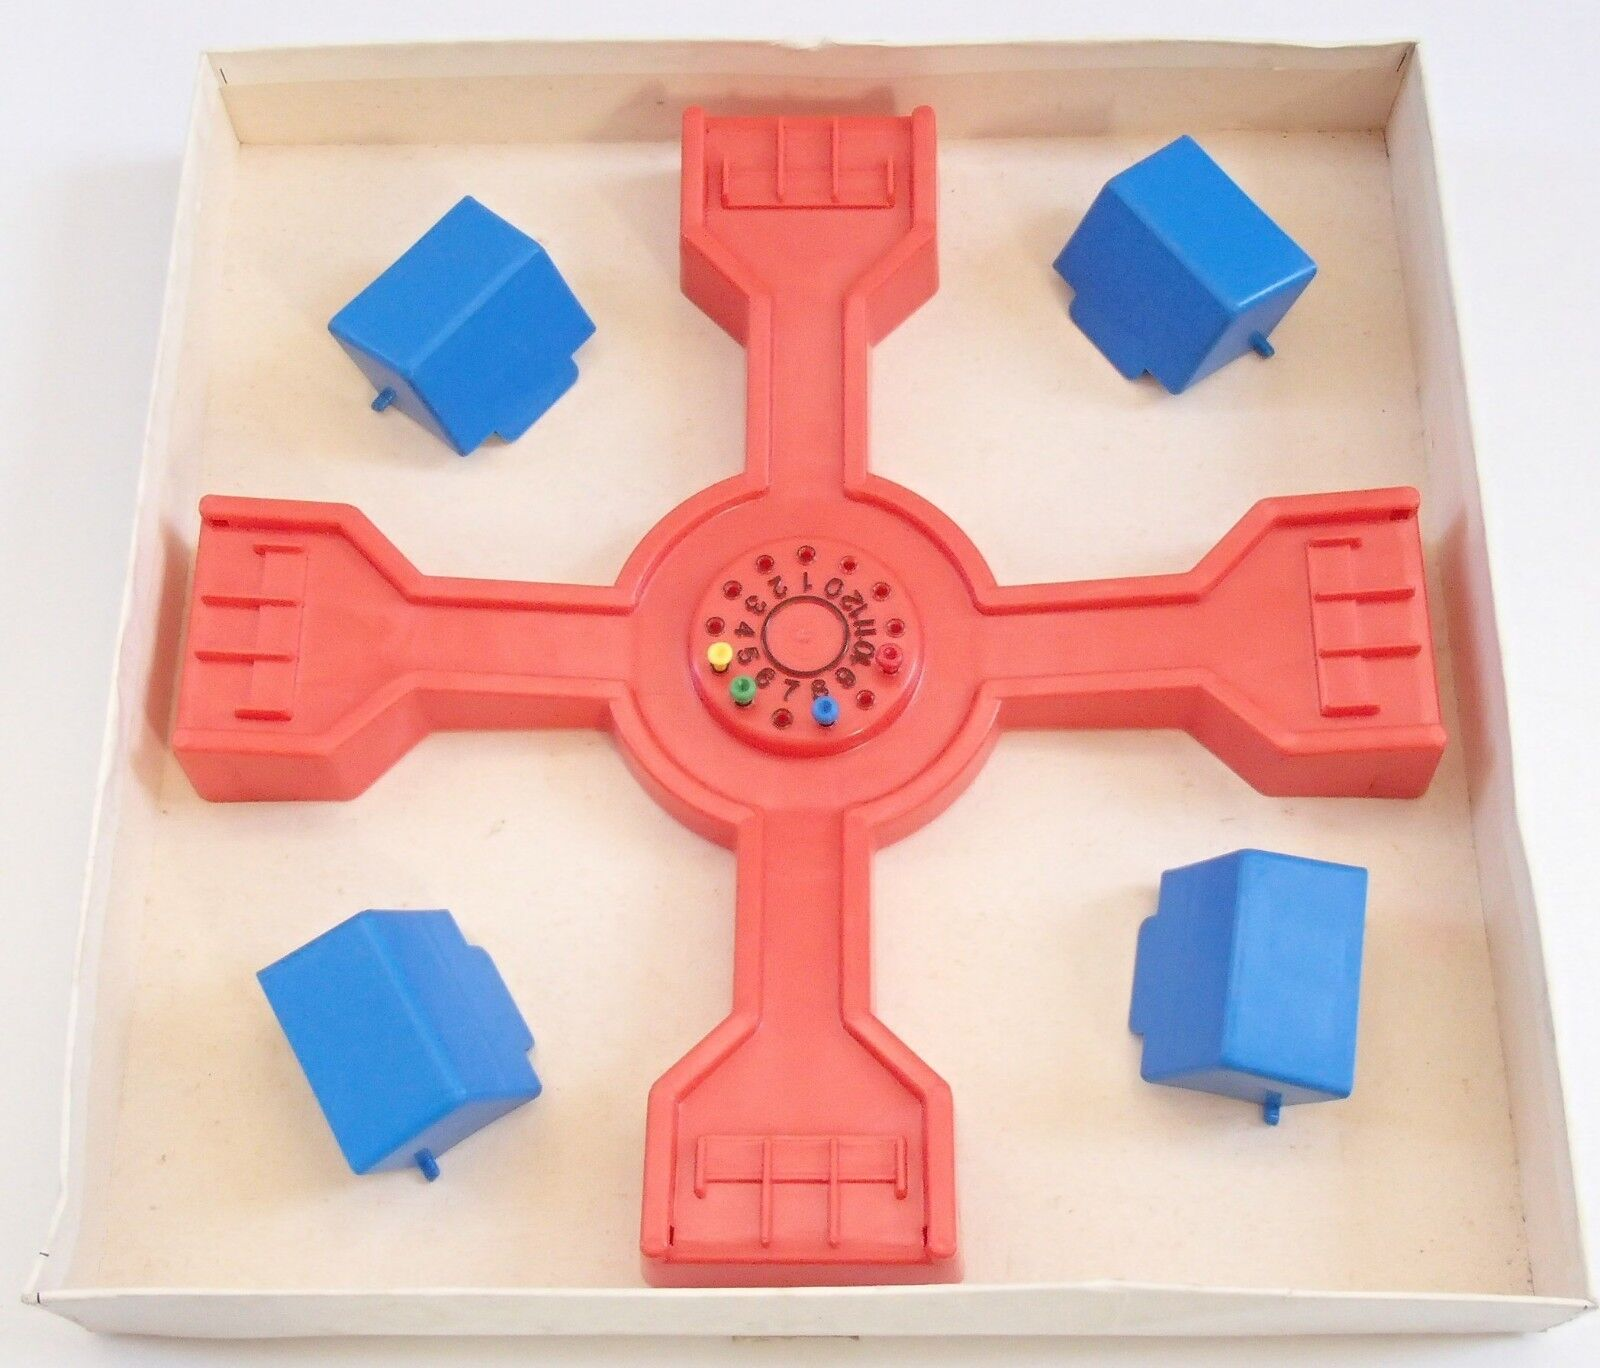 Rare Vintage 1982 Invicta Spoof Family Board Game of of of blueff & Guessing Complete b9330d